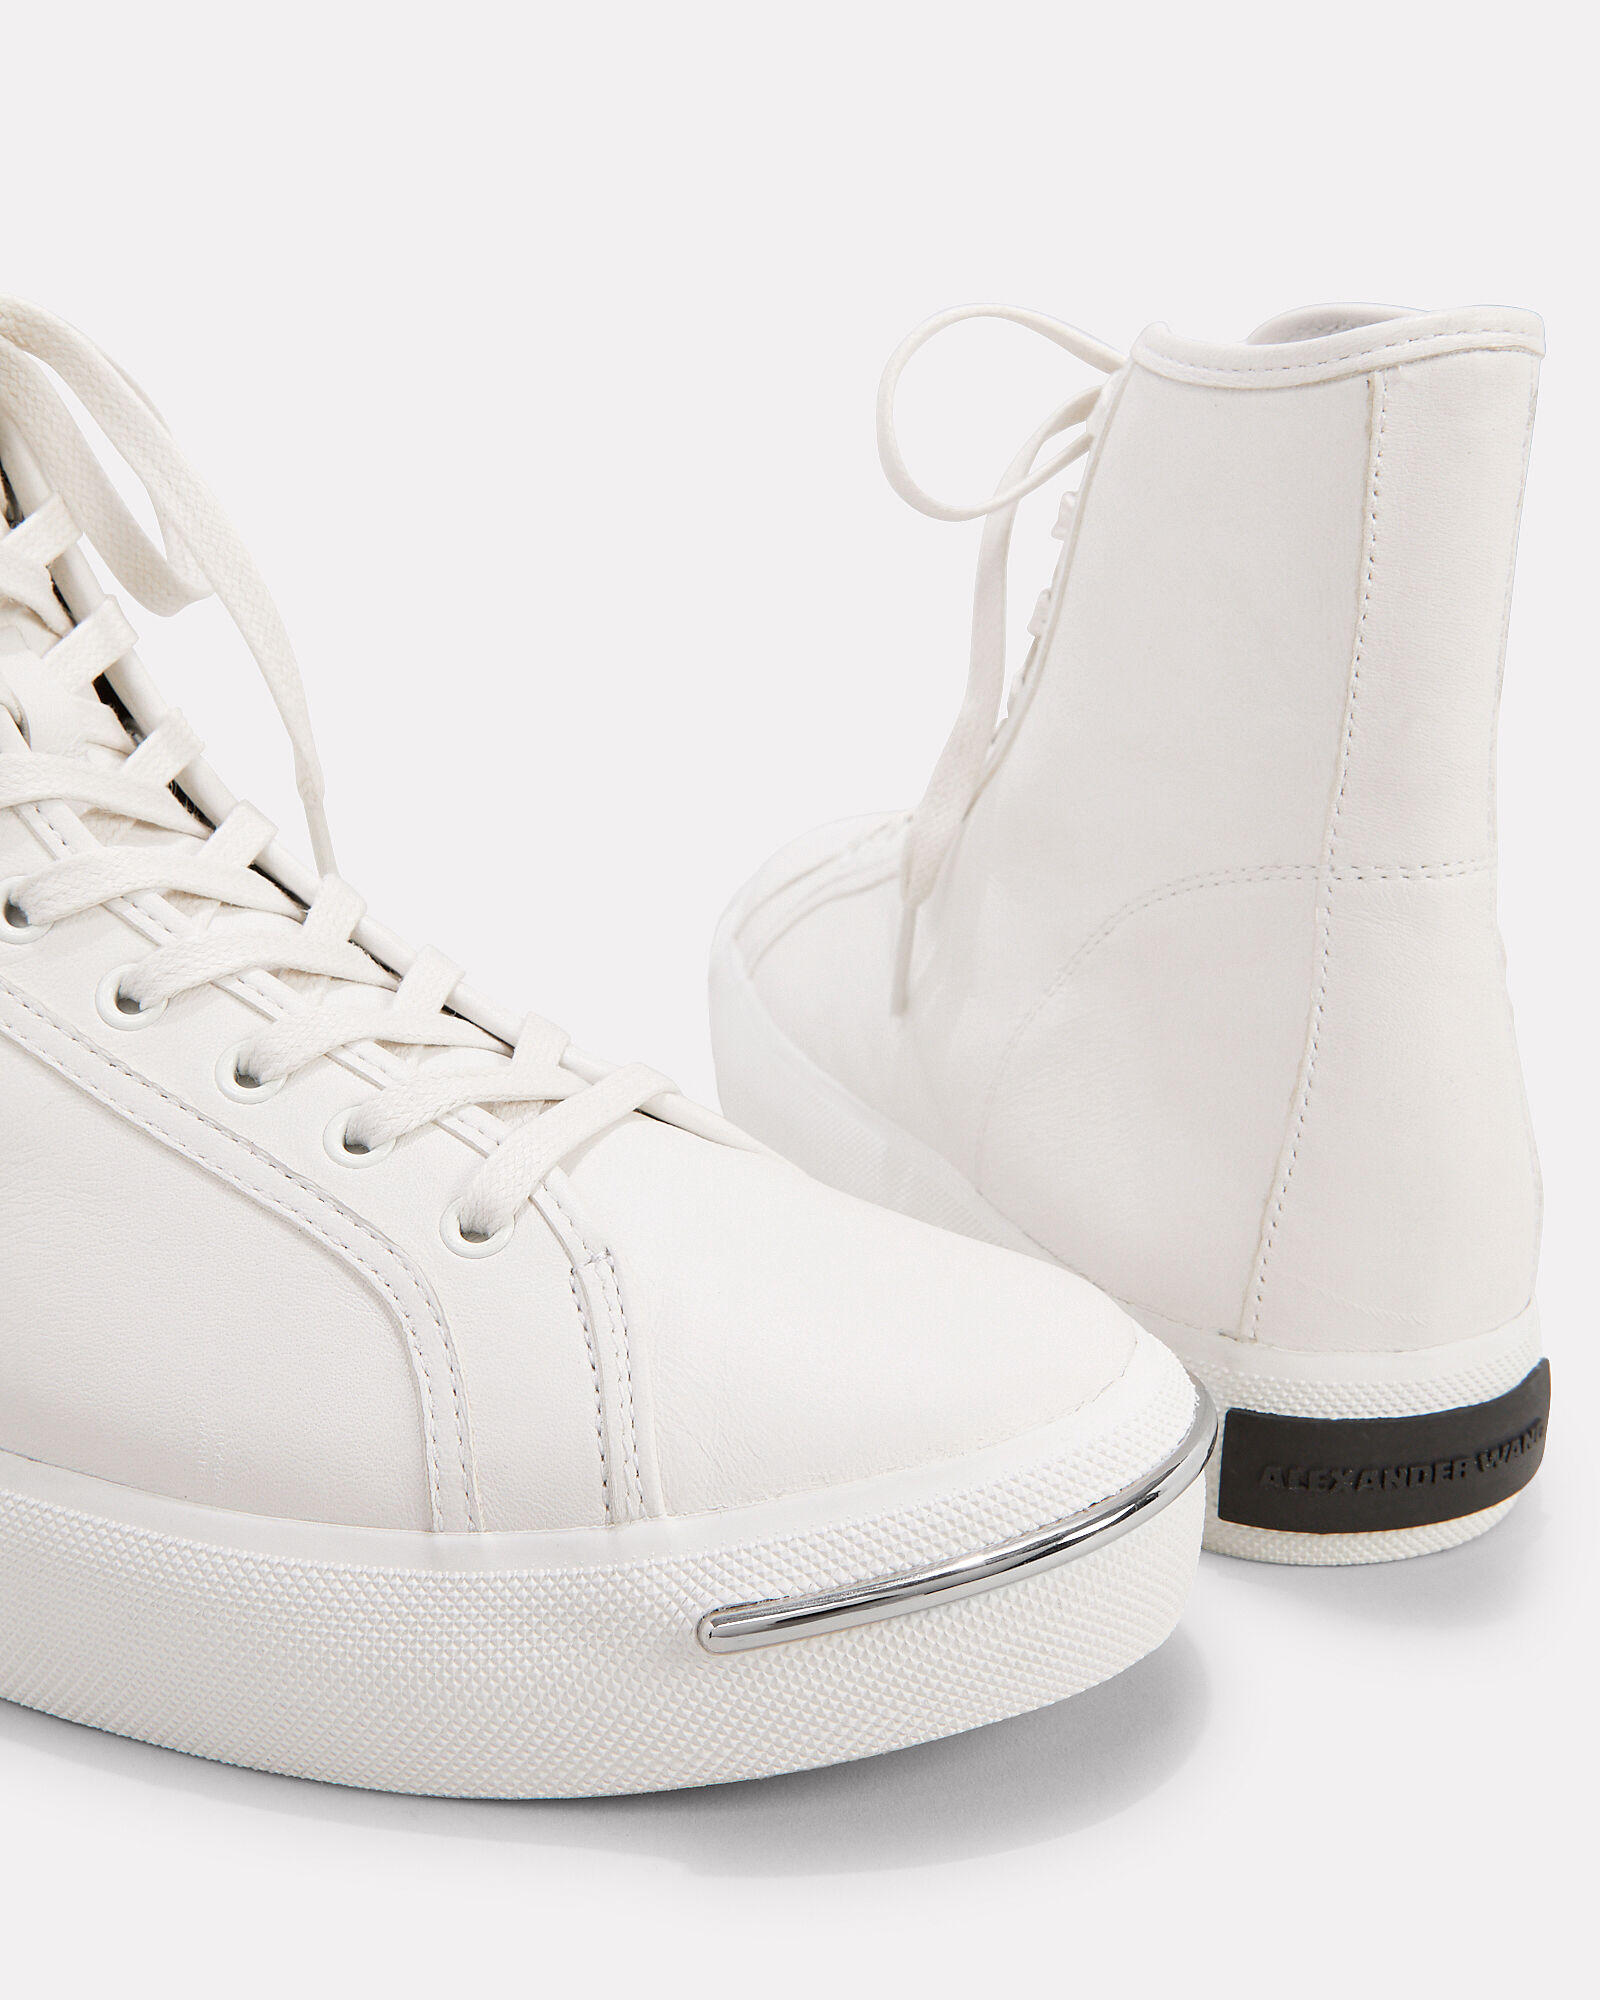 Nola High-Top Sneakers, WHITE, hi-res